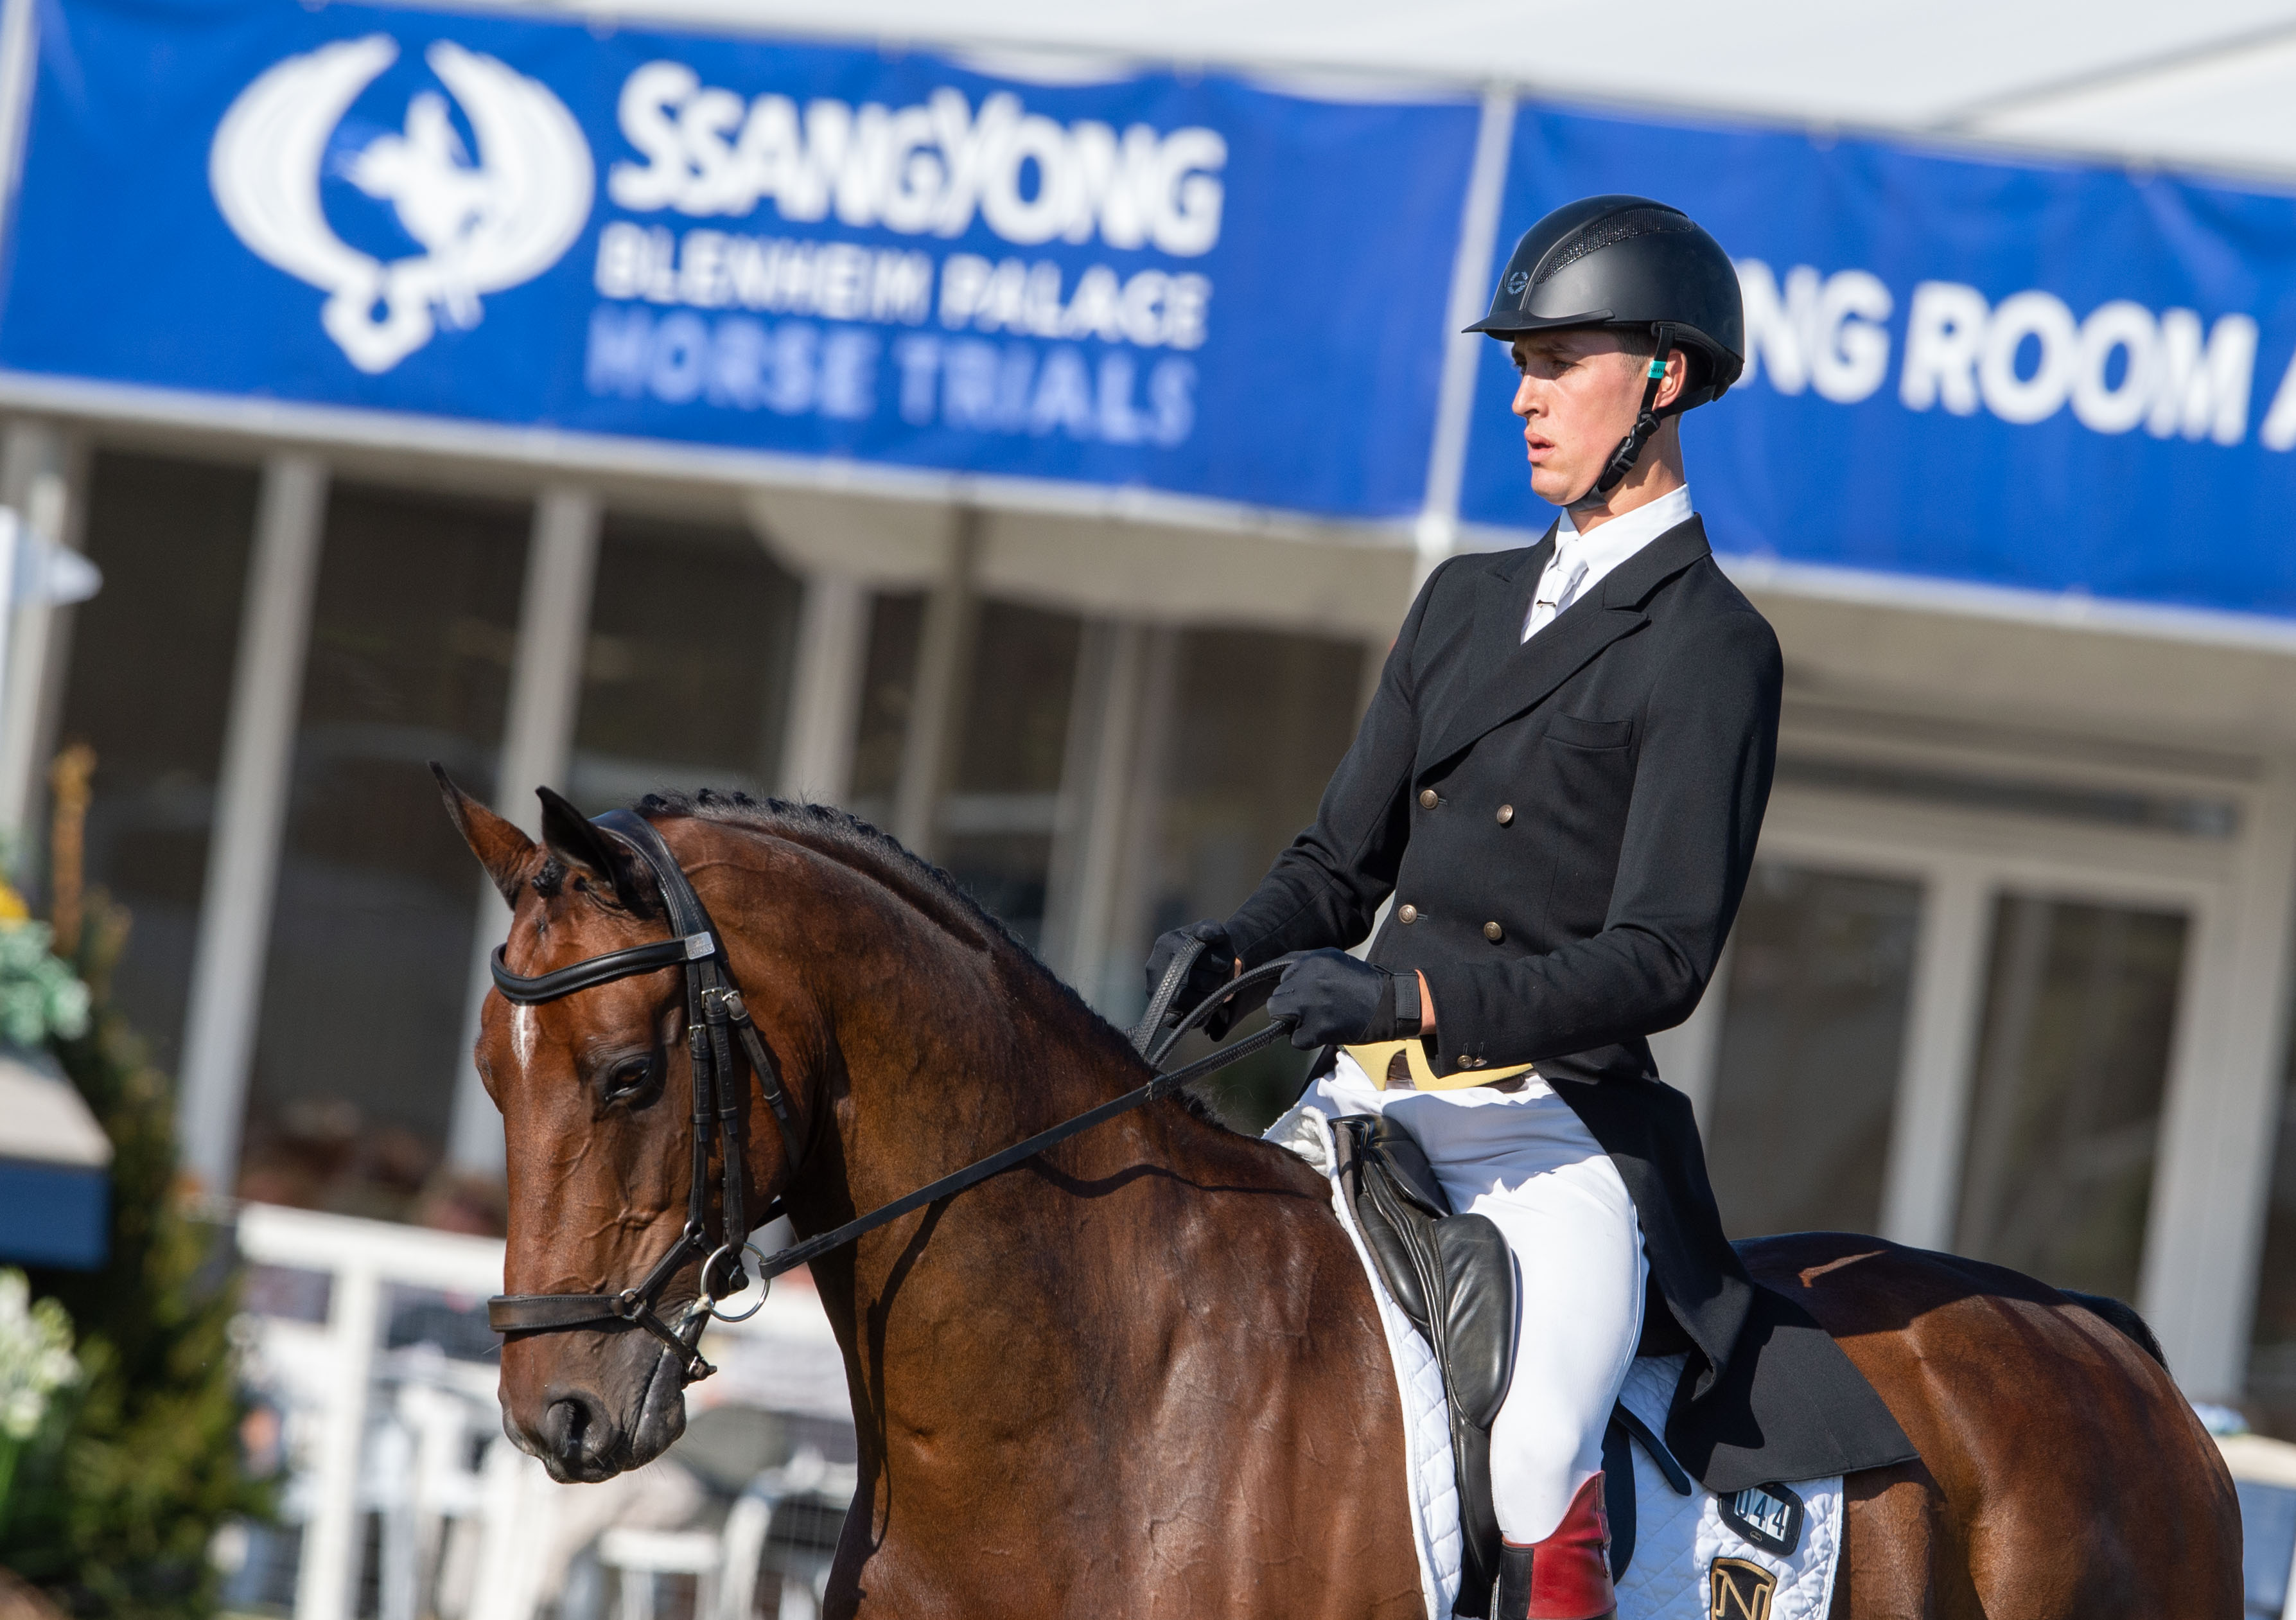 SSANGYONG BLENHEIM PALACE HORSE TRIALS:  YOUNG BRITISH RIDER SNATCHES THE LEAD